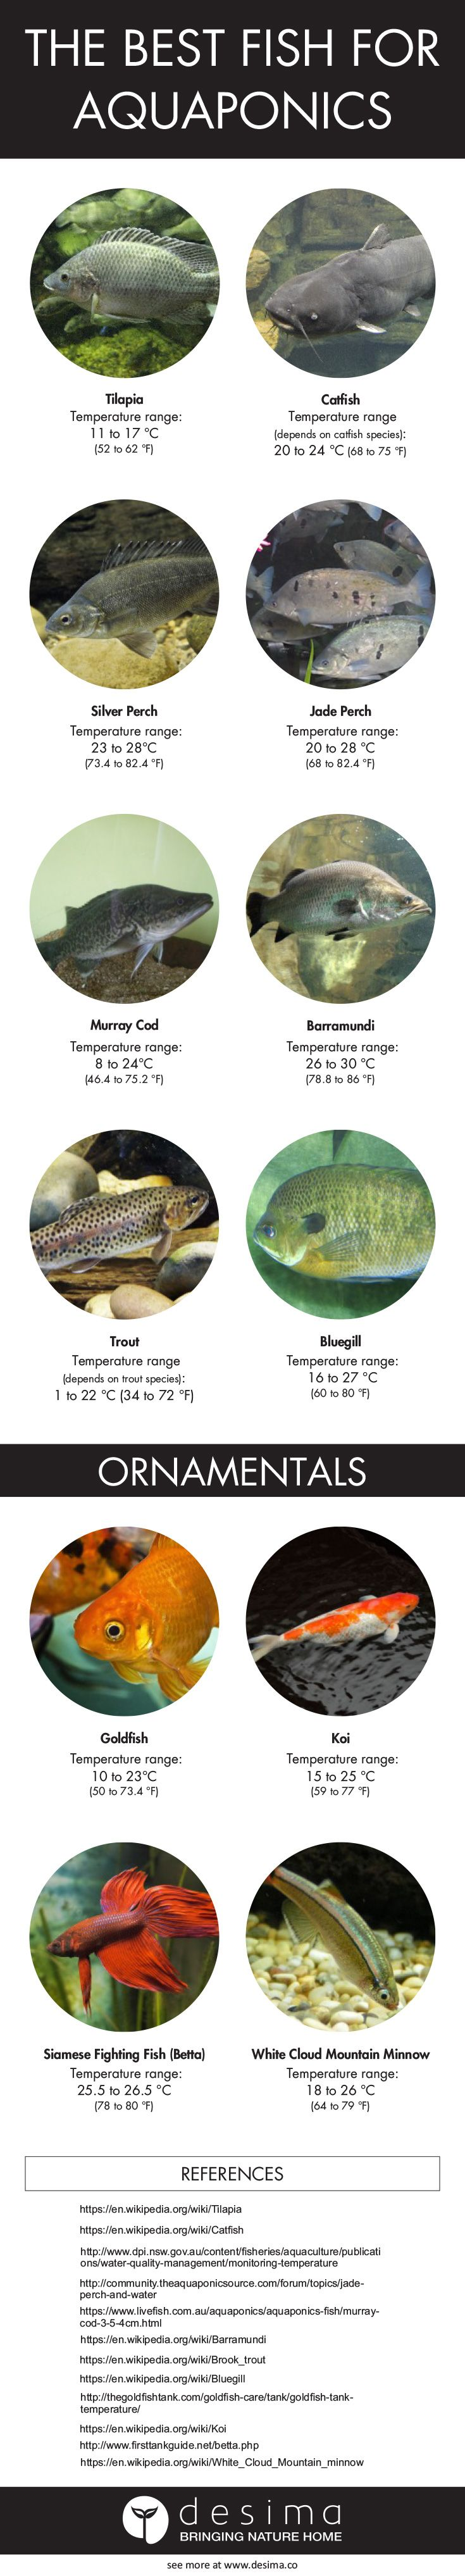 The best fish for aquaponics infographic                              …